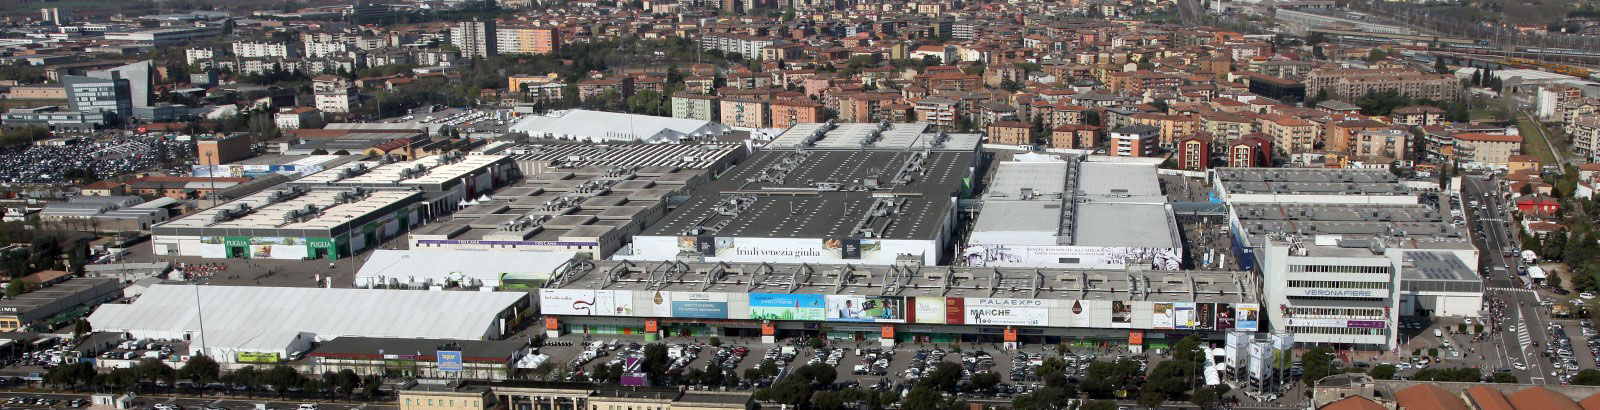 Info and services veronafiere s p a for Verona fiera